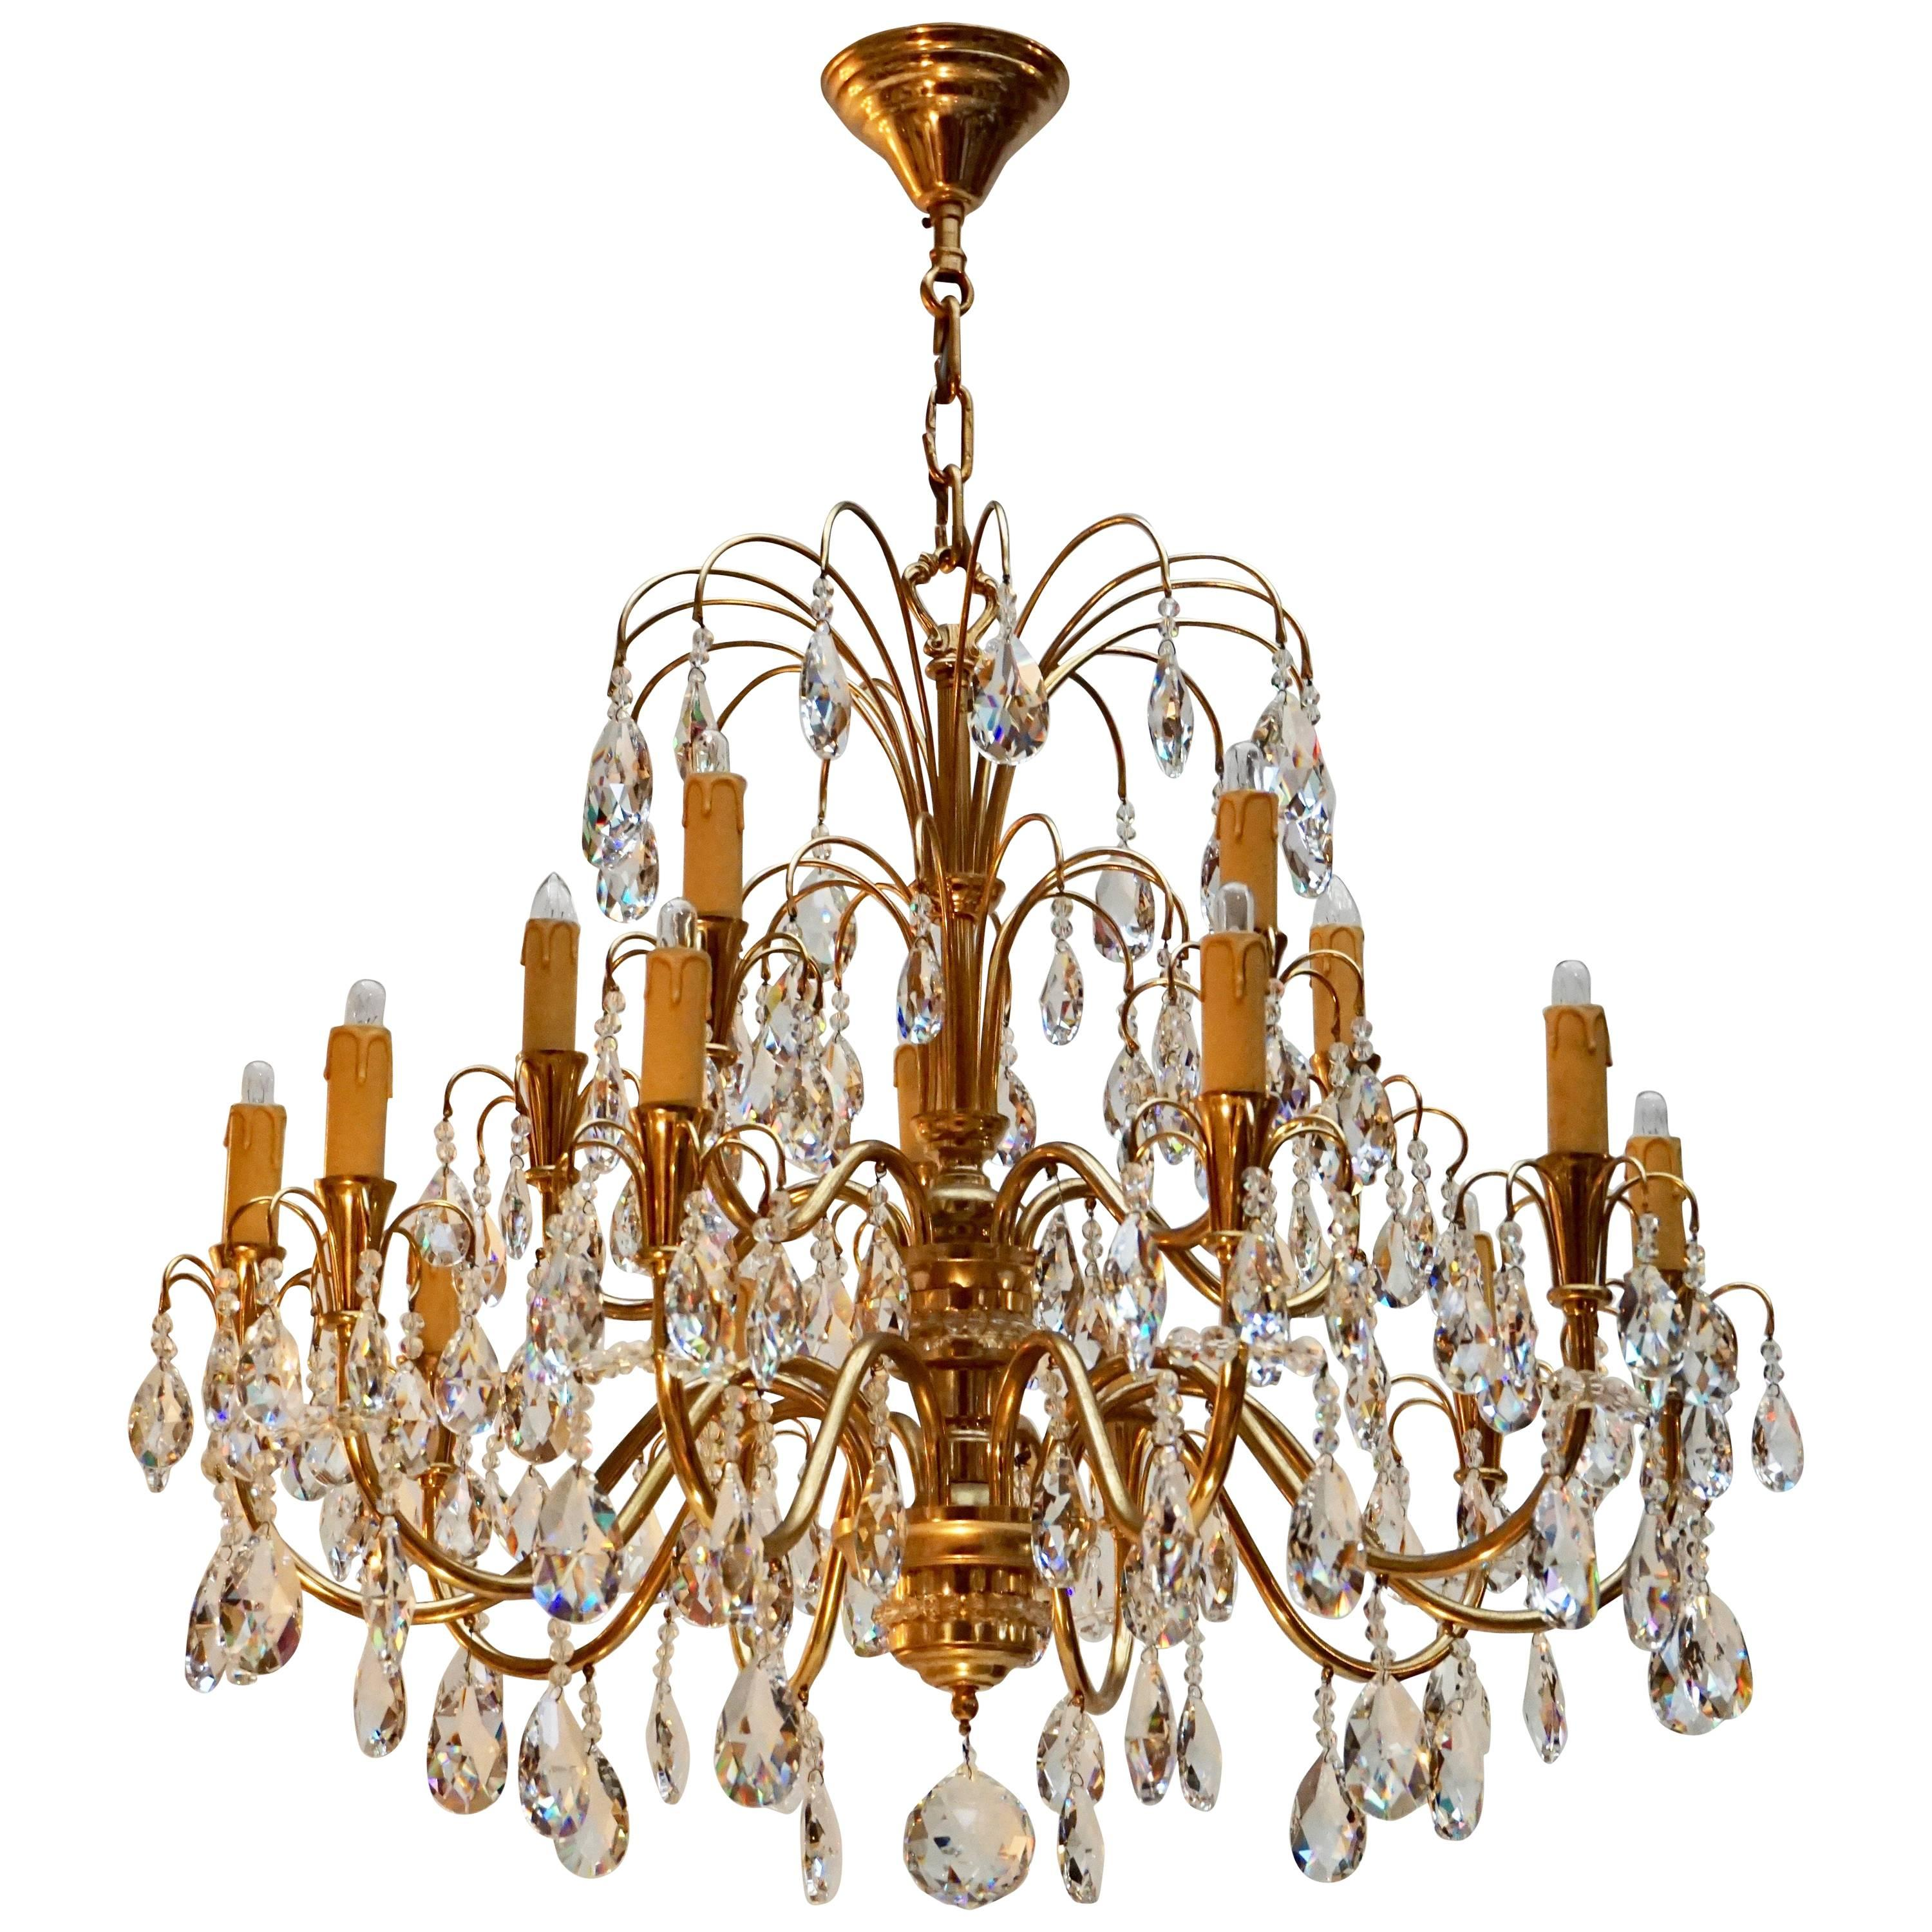 fixtures vintage modern dining chandeliers classic of area with lighting chandelier outdoor tuscan unusual fans light house for savoy table coastal design brands